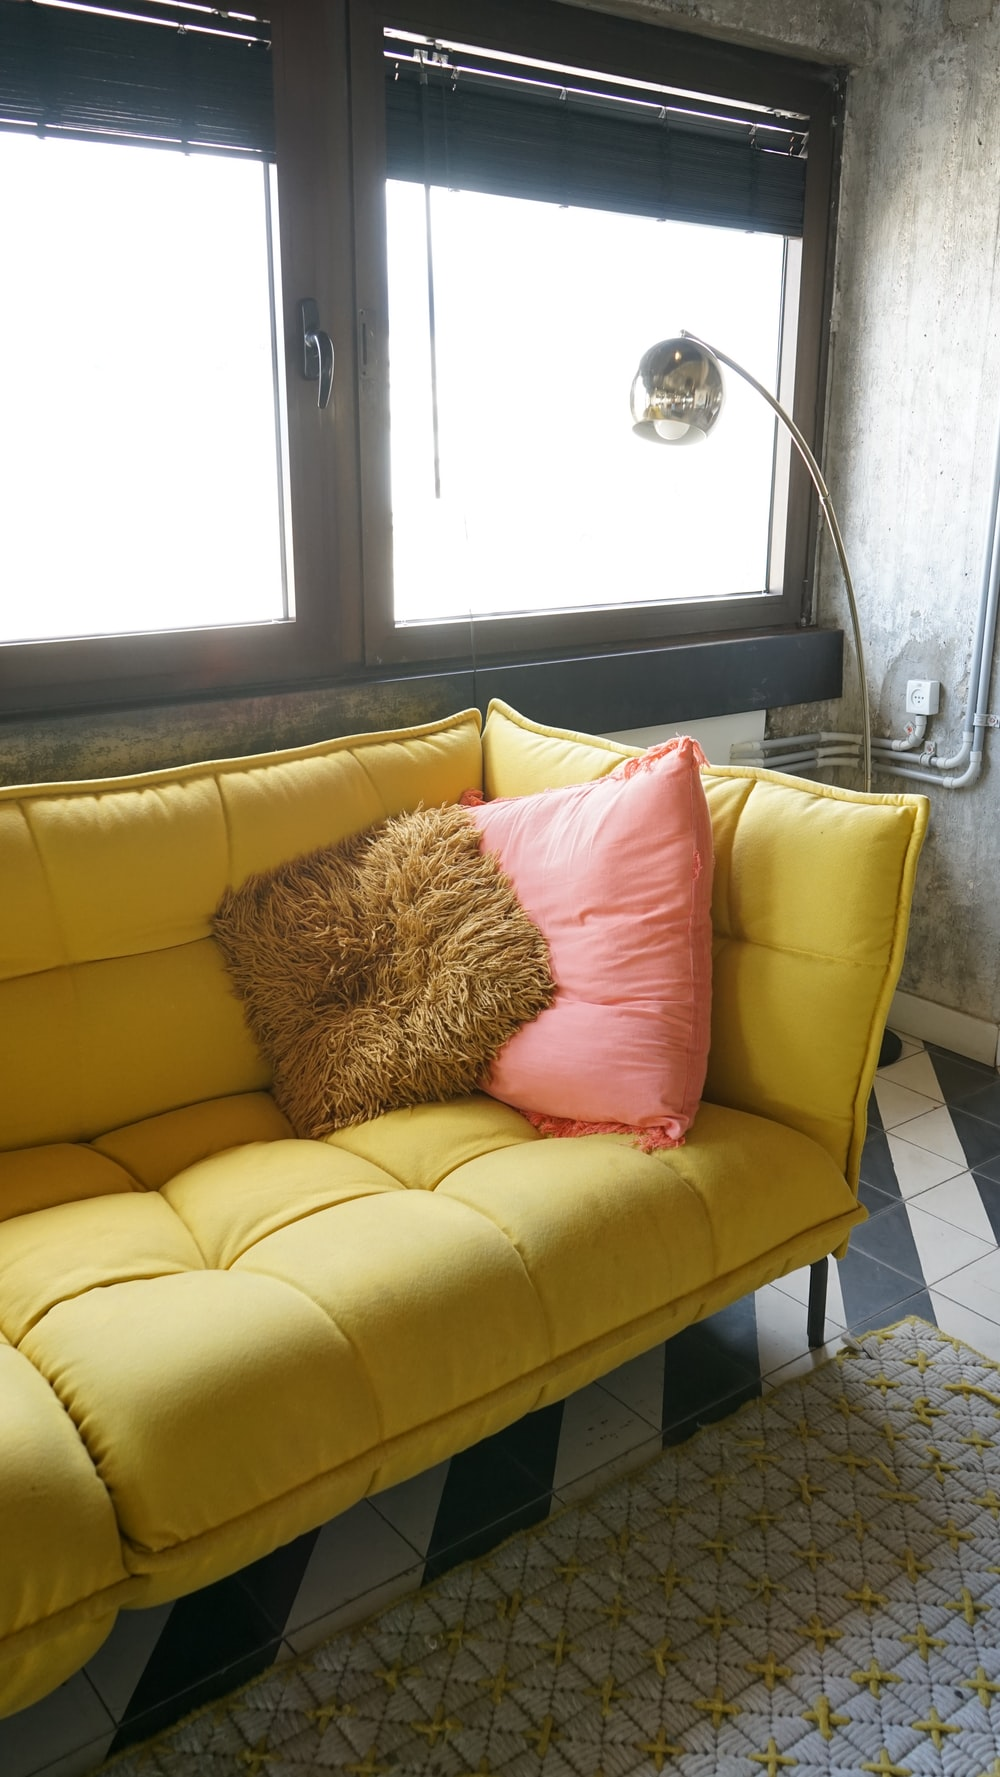 brown throw pillow on yellow couch